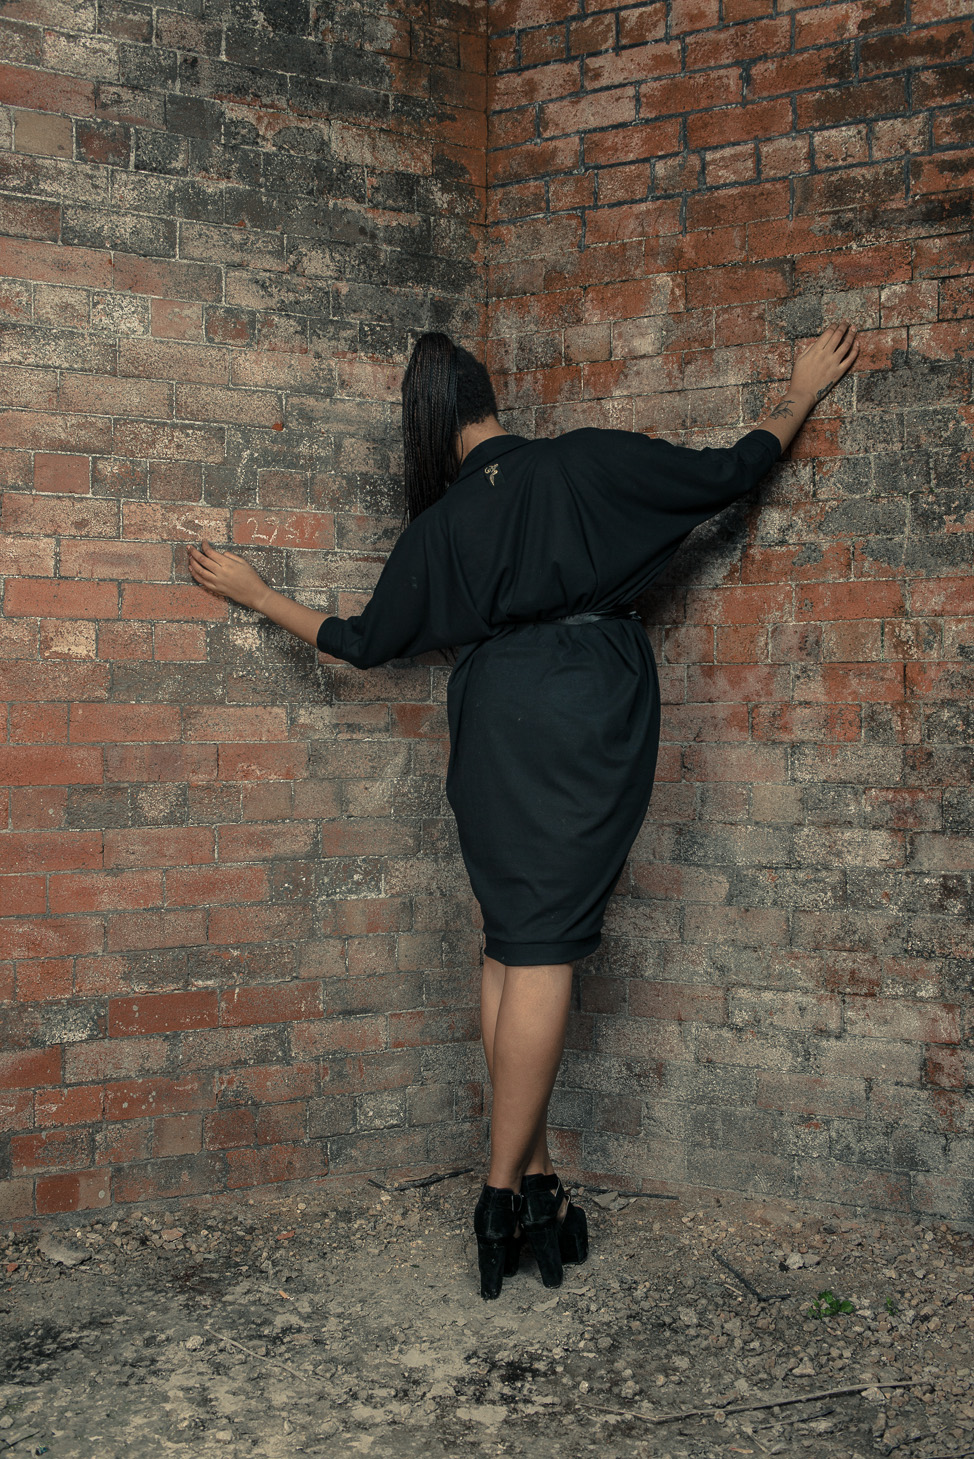 zaramia-ava-zaramiaava-leeds-fashion-designer-ethical-sustainable-tailored-minimalist-aya-dress-versatile-drape-black-belt-wrap-cowl-styling-womenswear-models-photoshoot-location-16